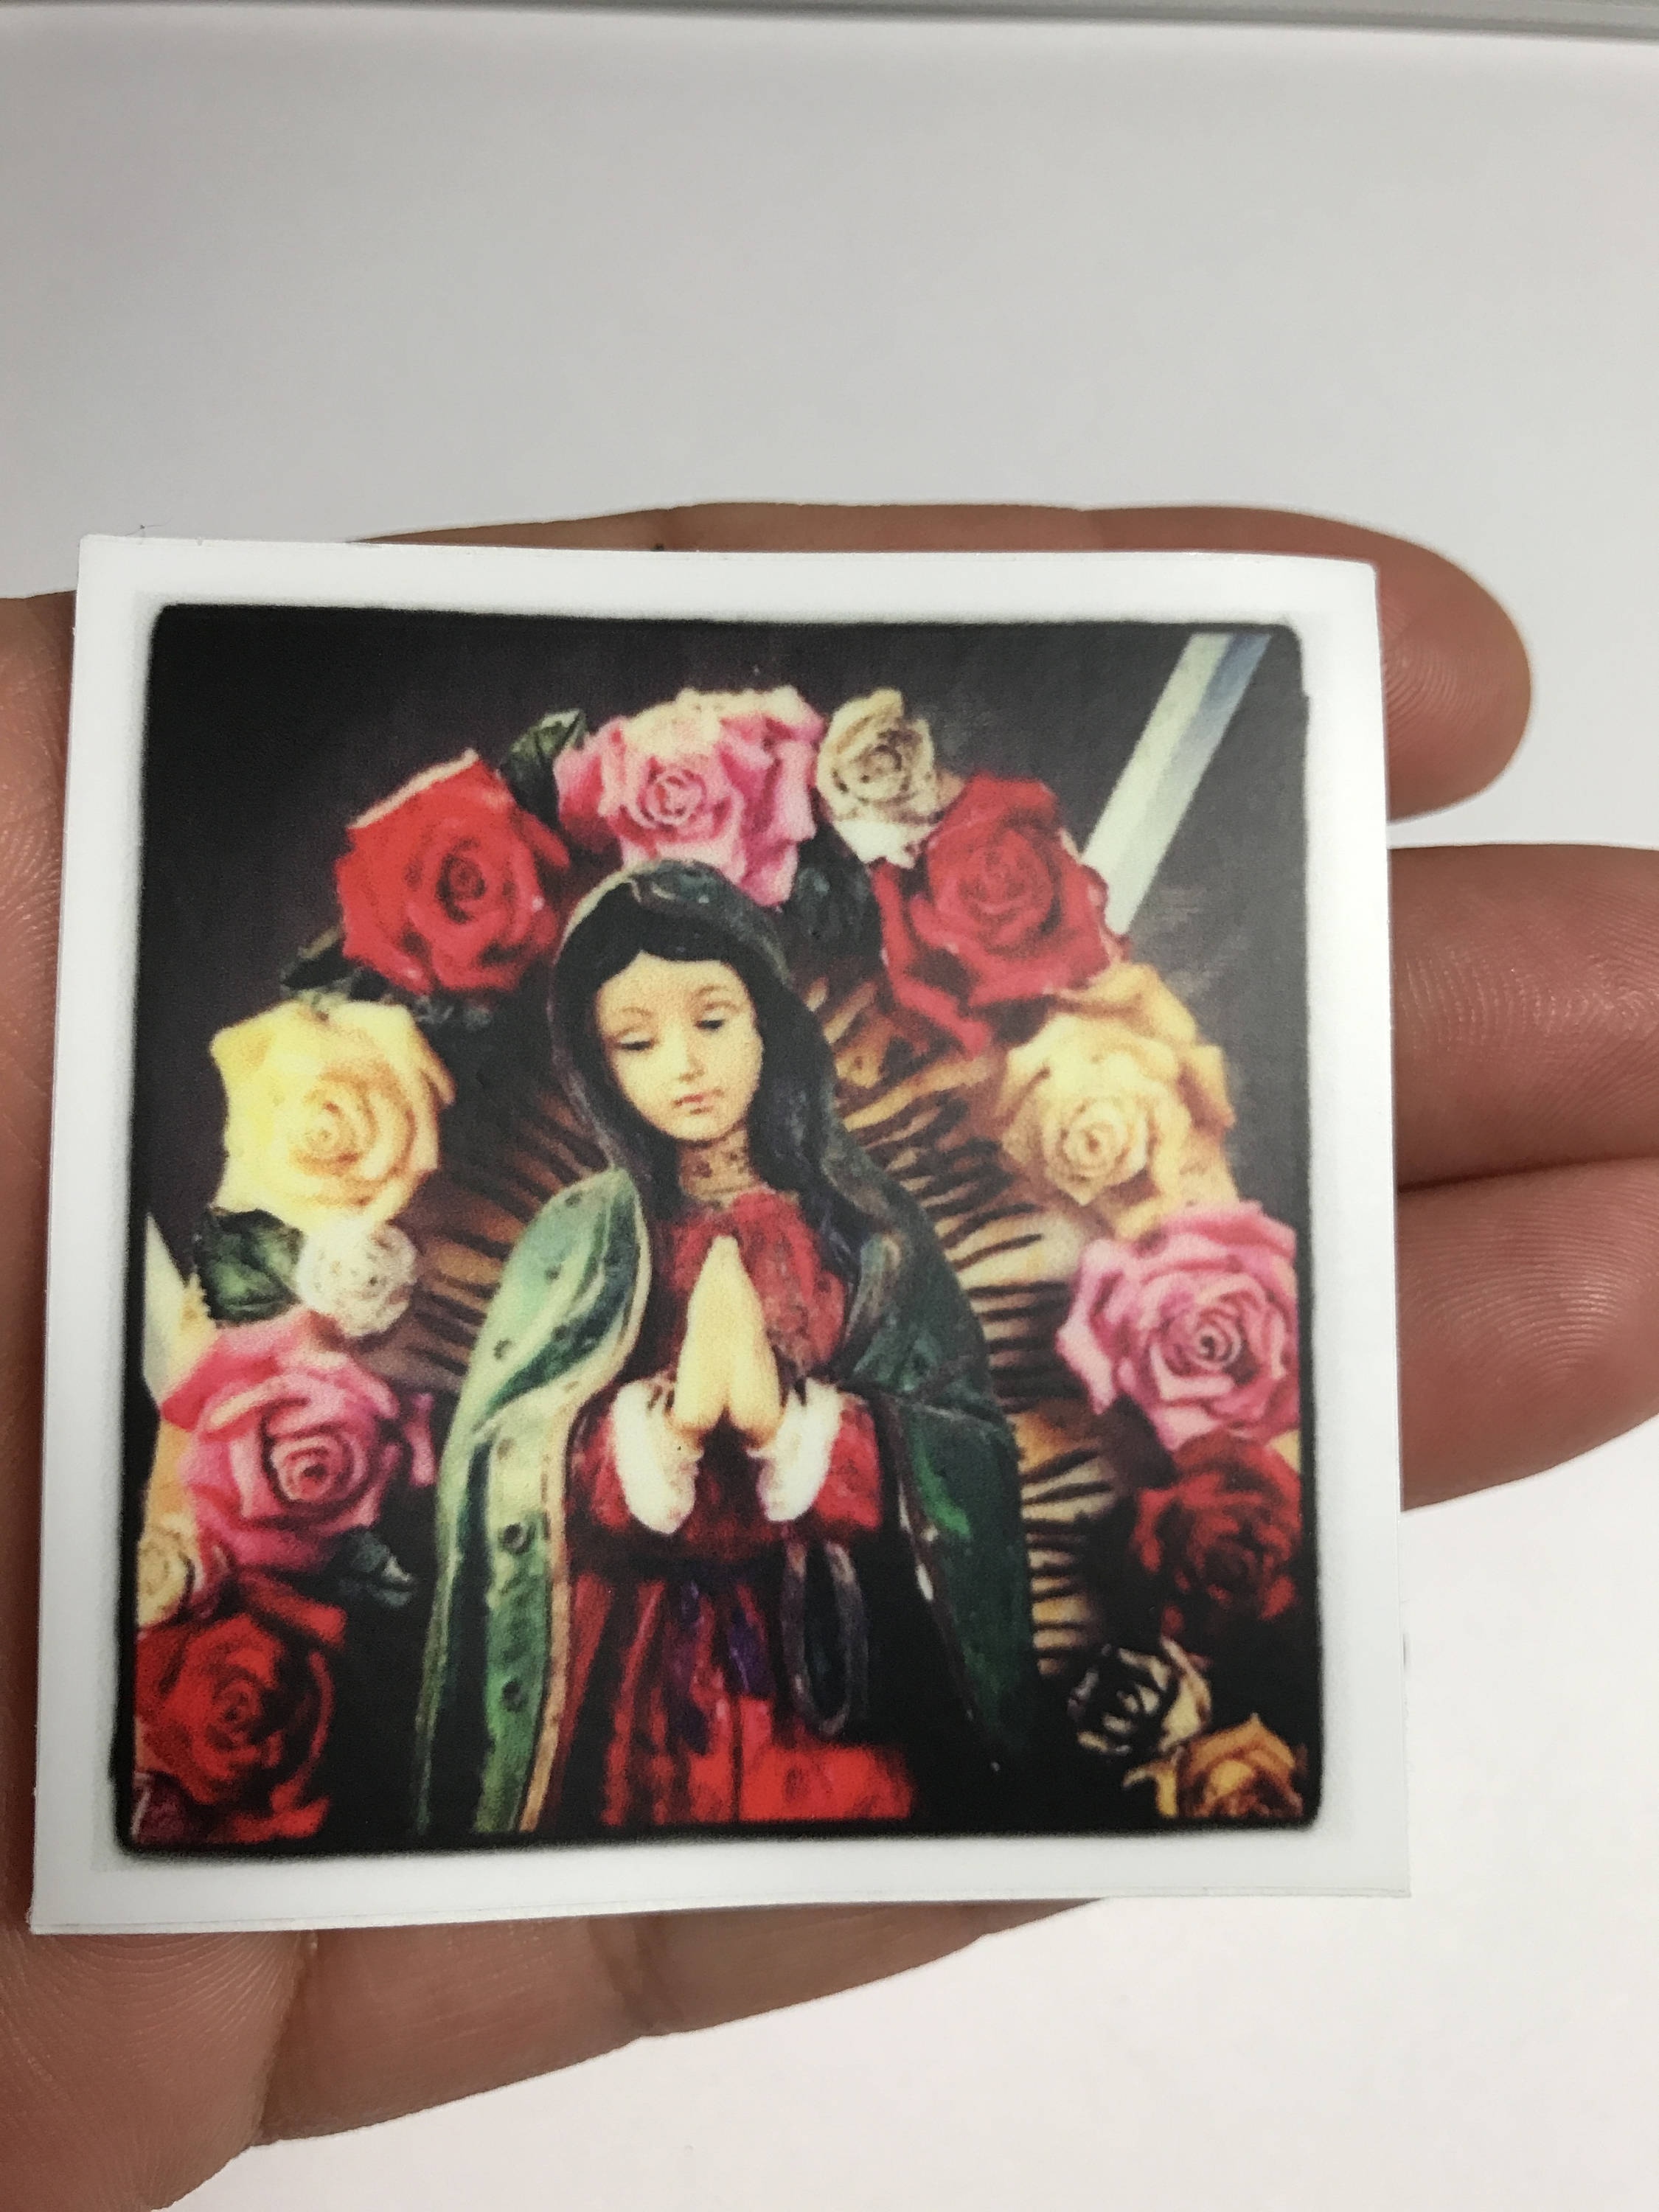 Virgencita Con Flores Sticker By Very That 2x2 Inches